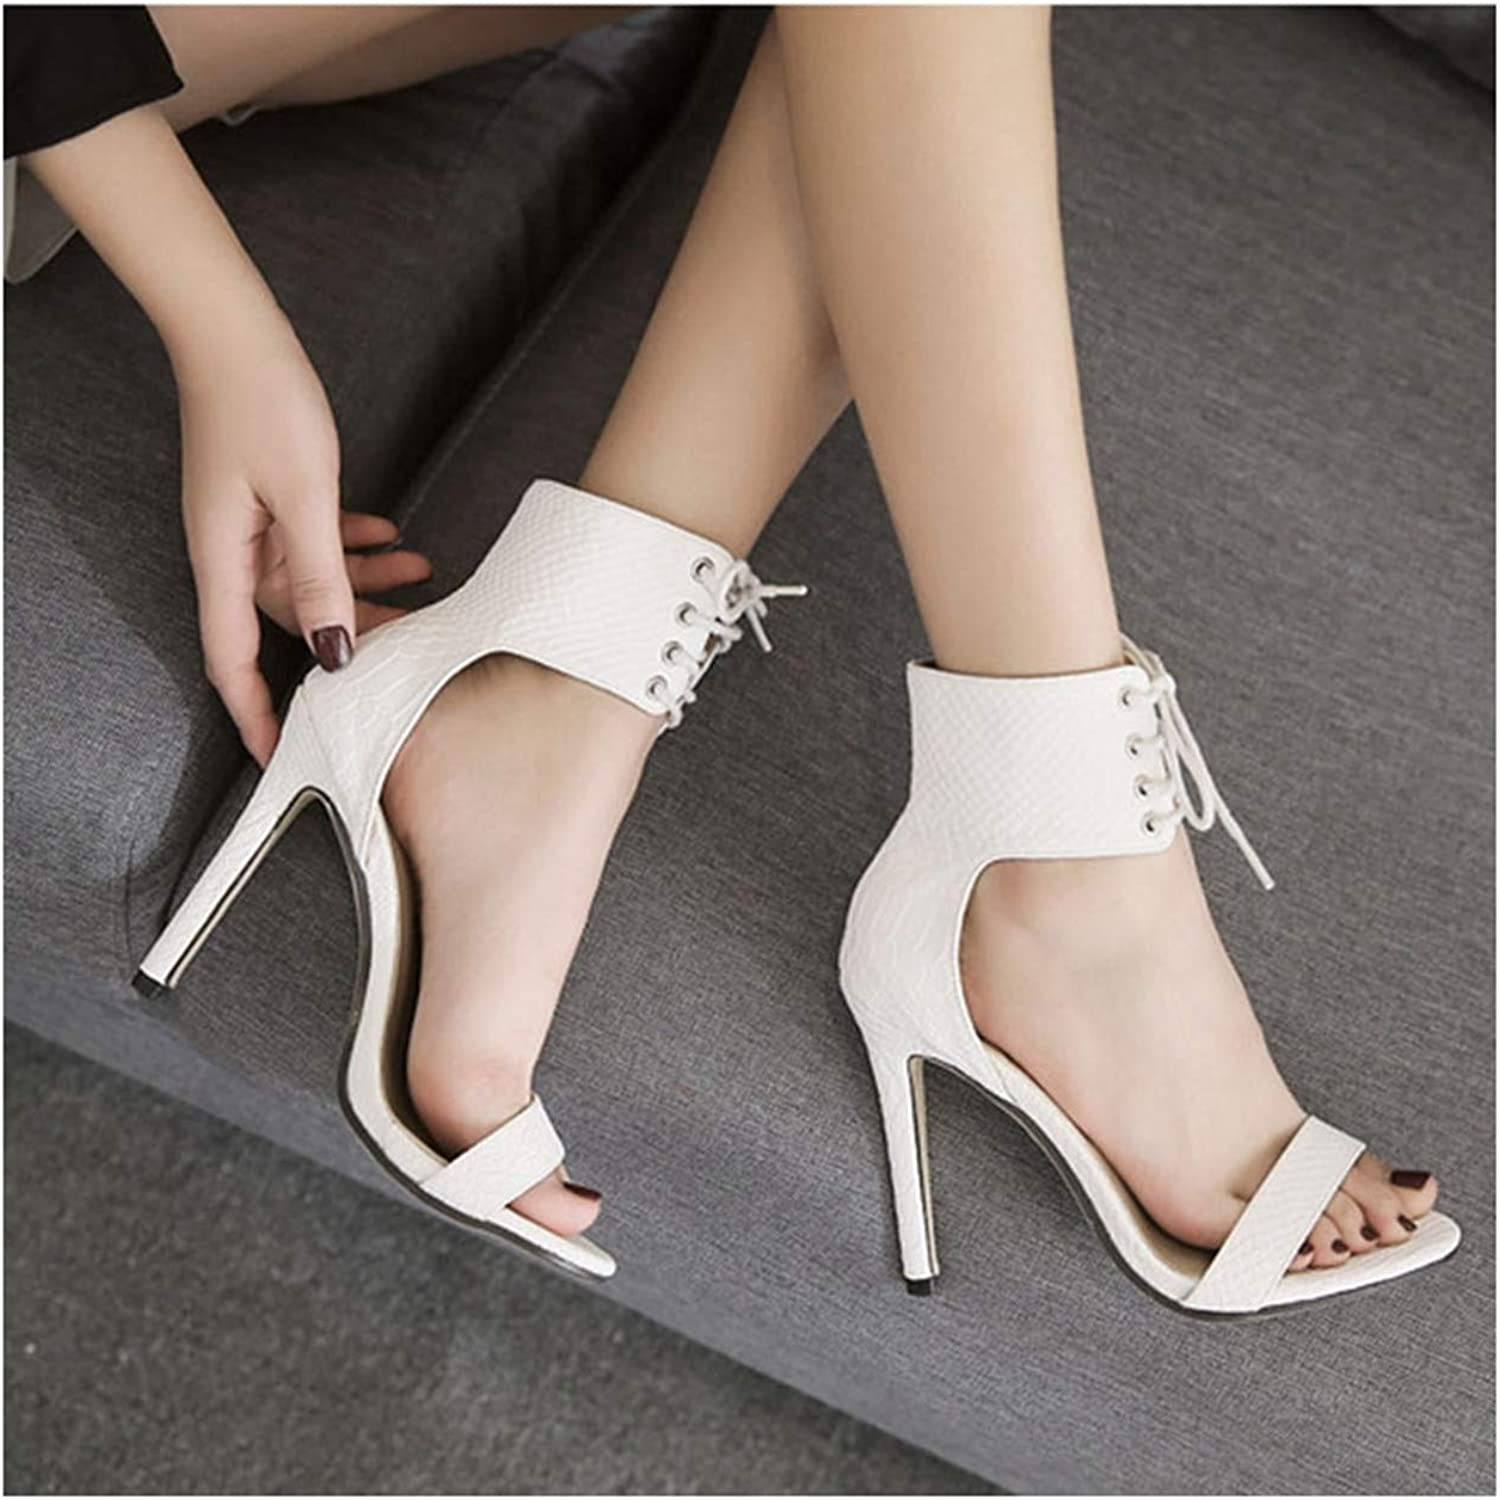 Summer Woman Sandals Pumps Thin Air Heels Super High-Heeled Open Toe Sexy Stiletto Party Pumps